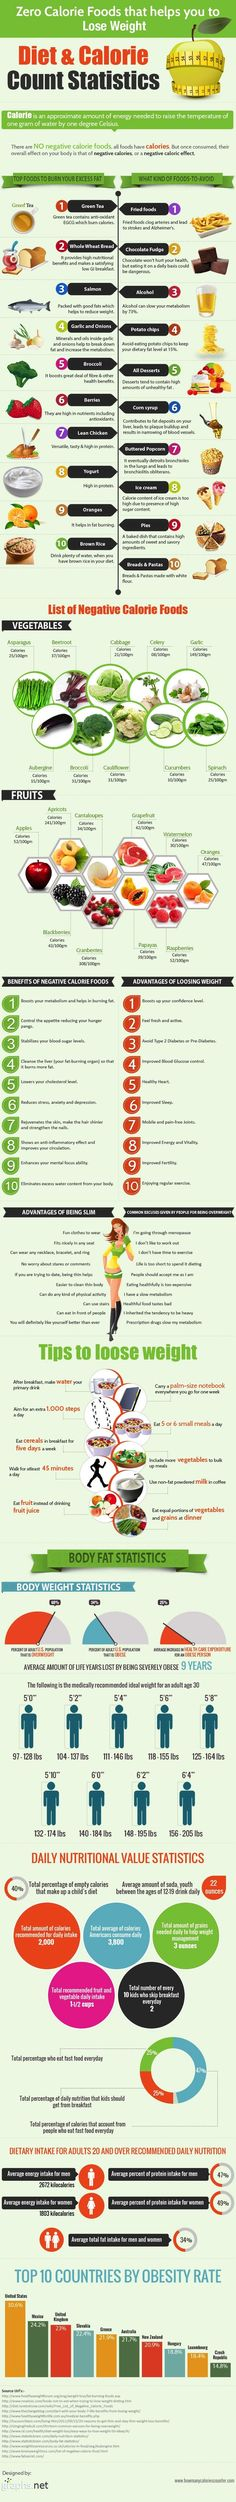 Zero calories that helps you to loose weight An interesting graph.. nice to know if you are on diet